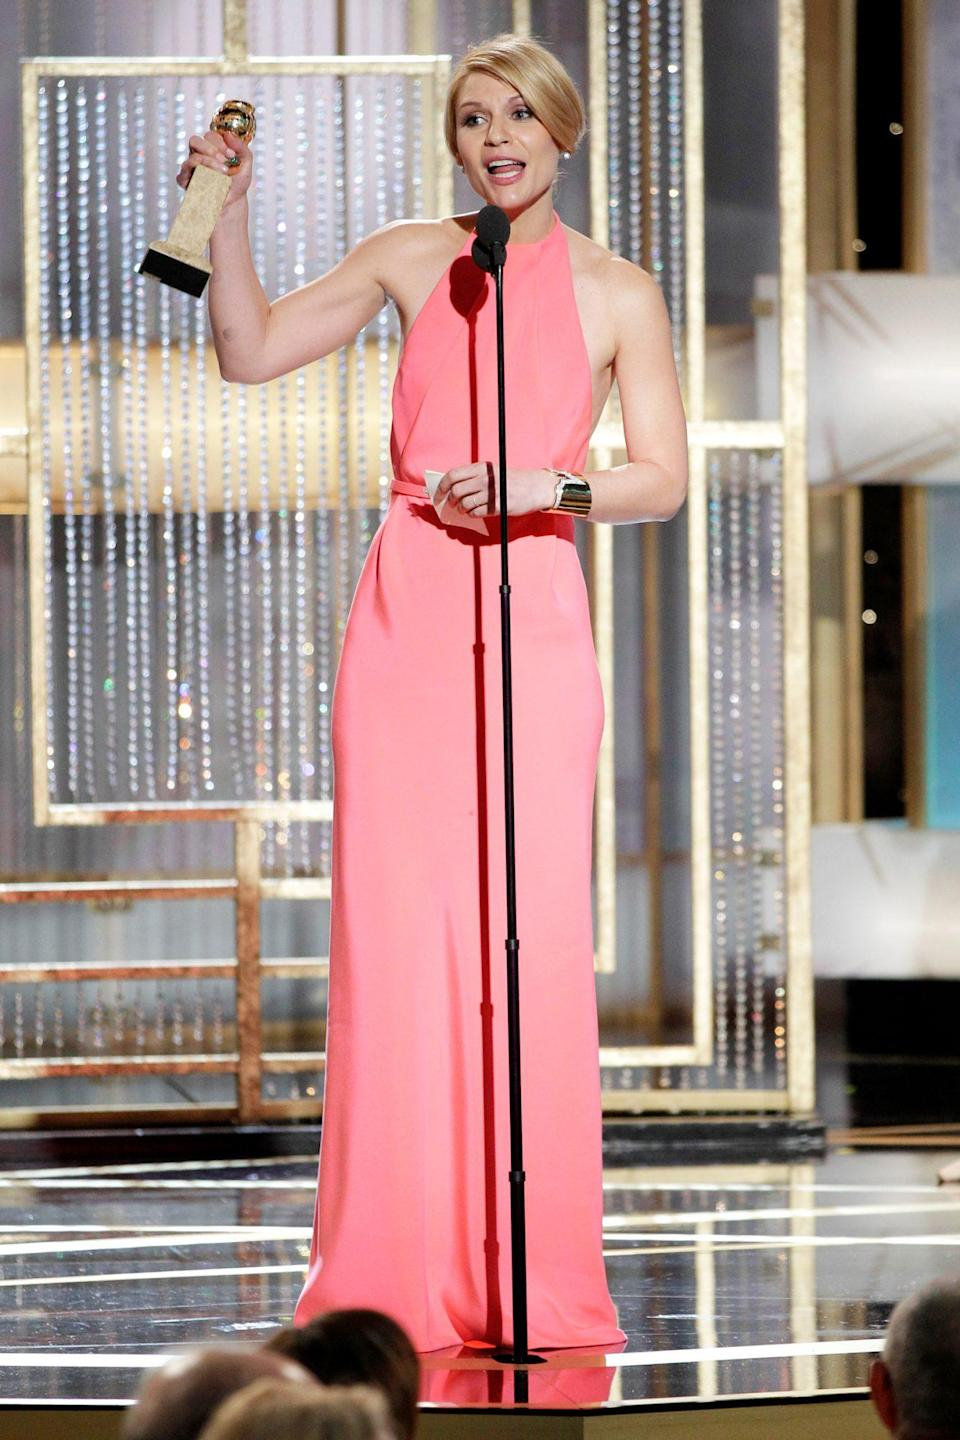 <p>Claire Danes was polished in her pink halter column when she took home best actress in a television movie for her role in <em>Temple Grandin.</em></p>